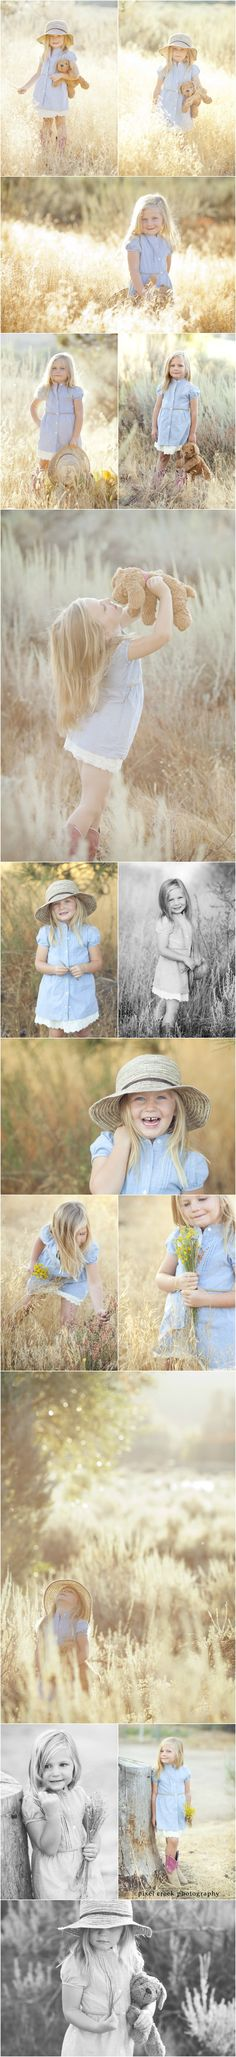 ADORABLE photo shoot with teddy bear! #kids #kids_stuff